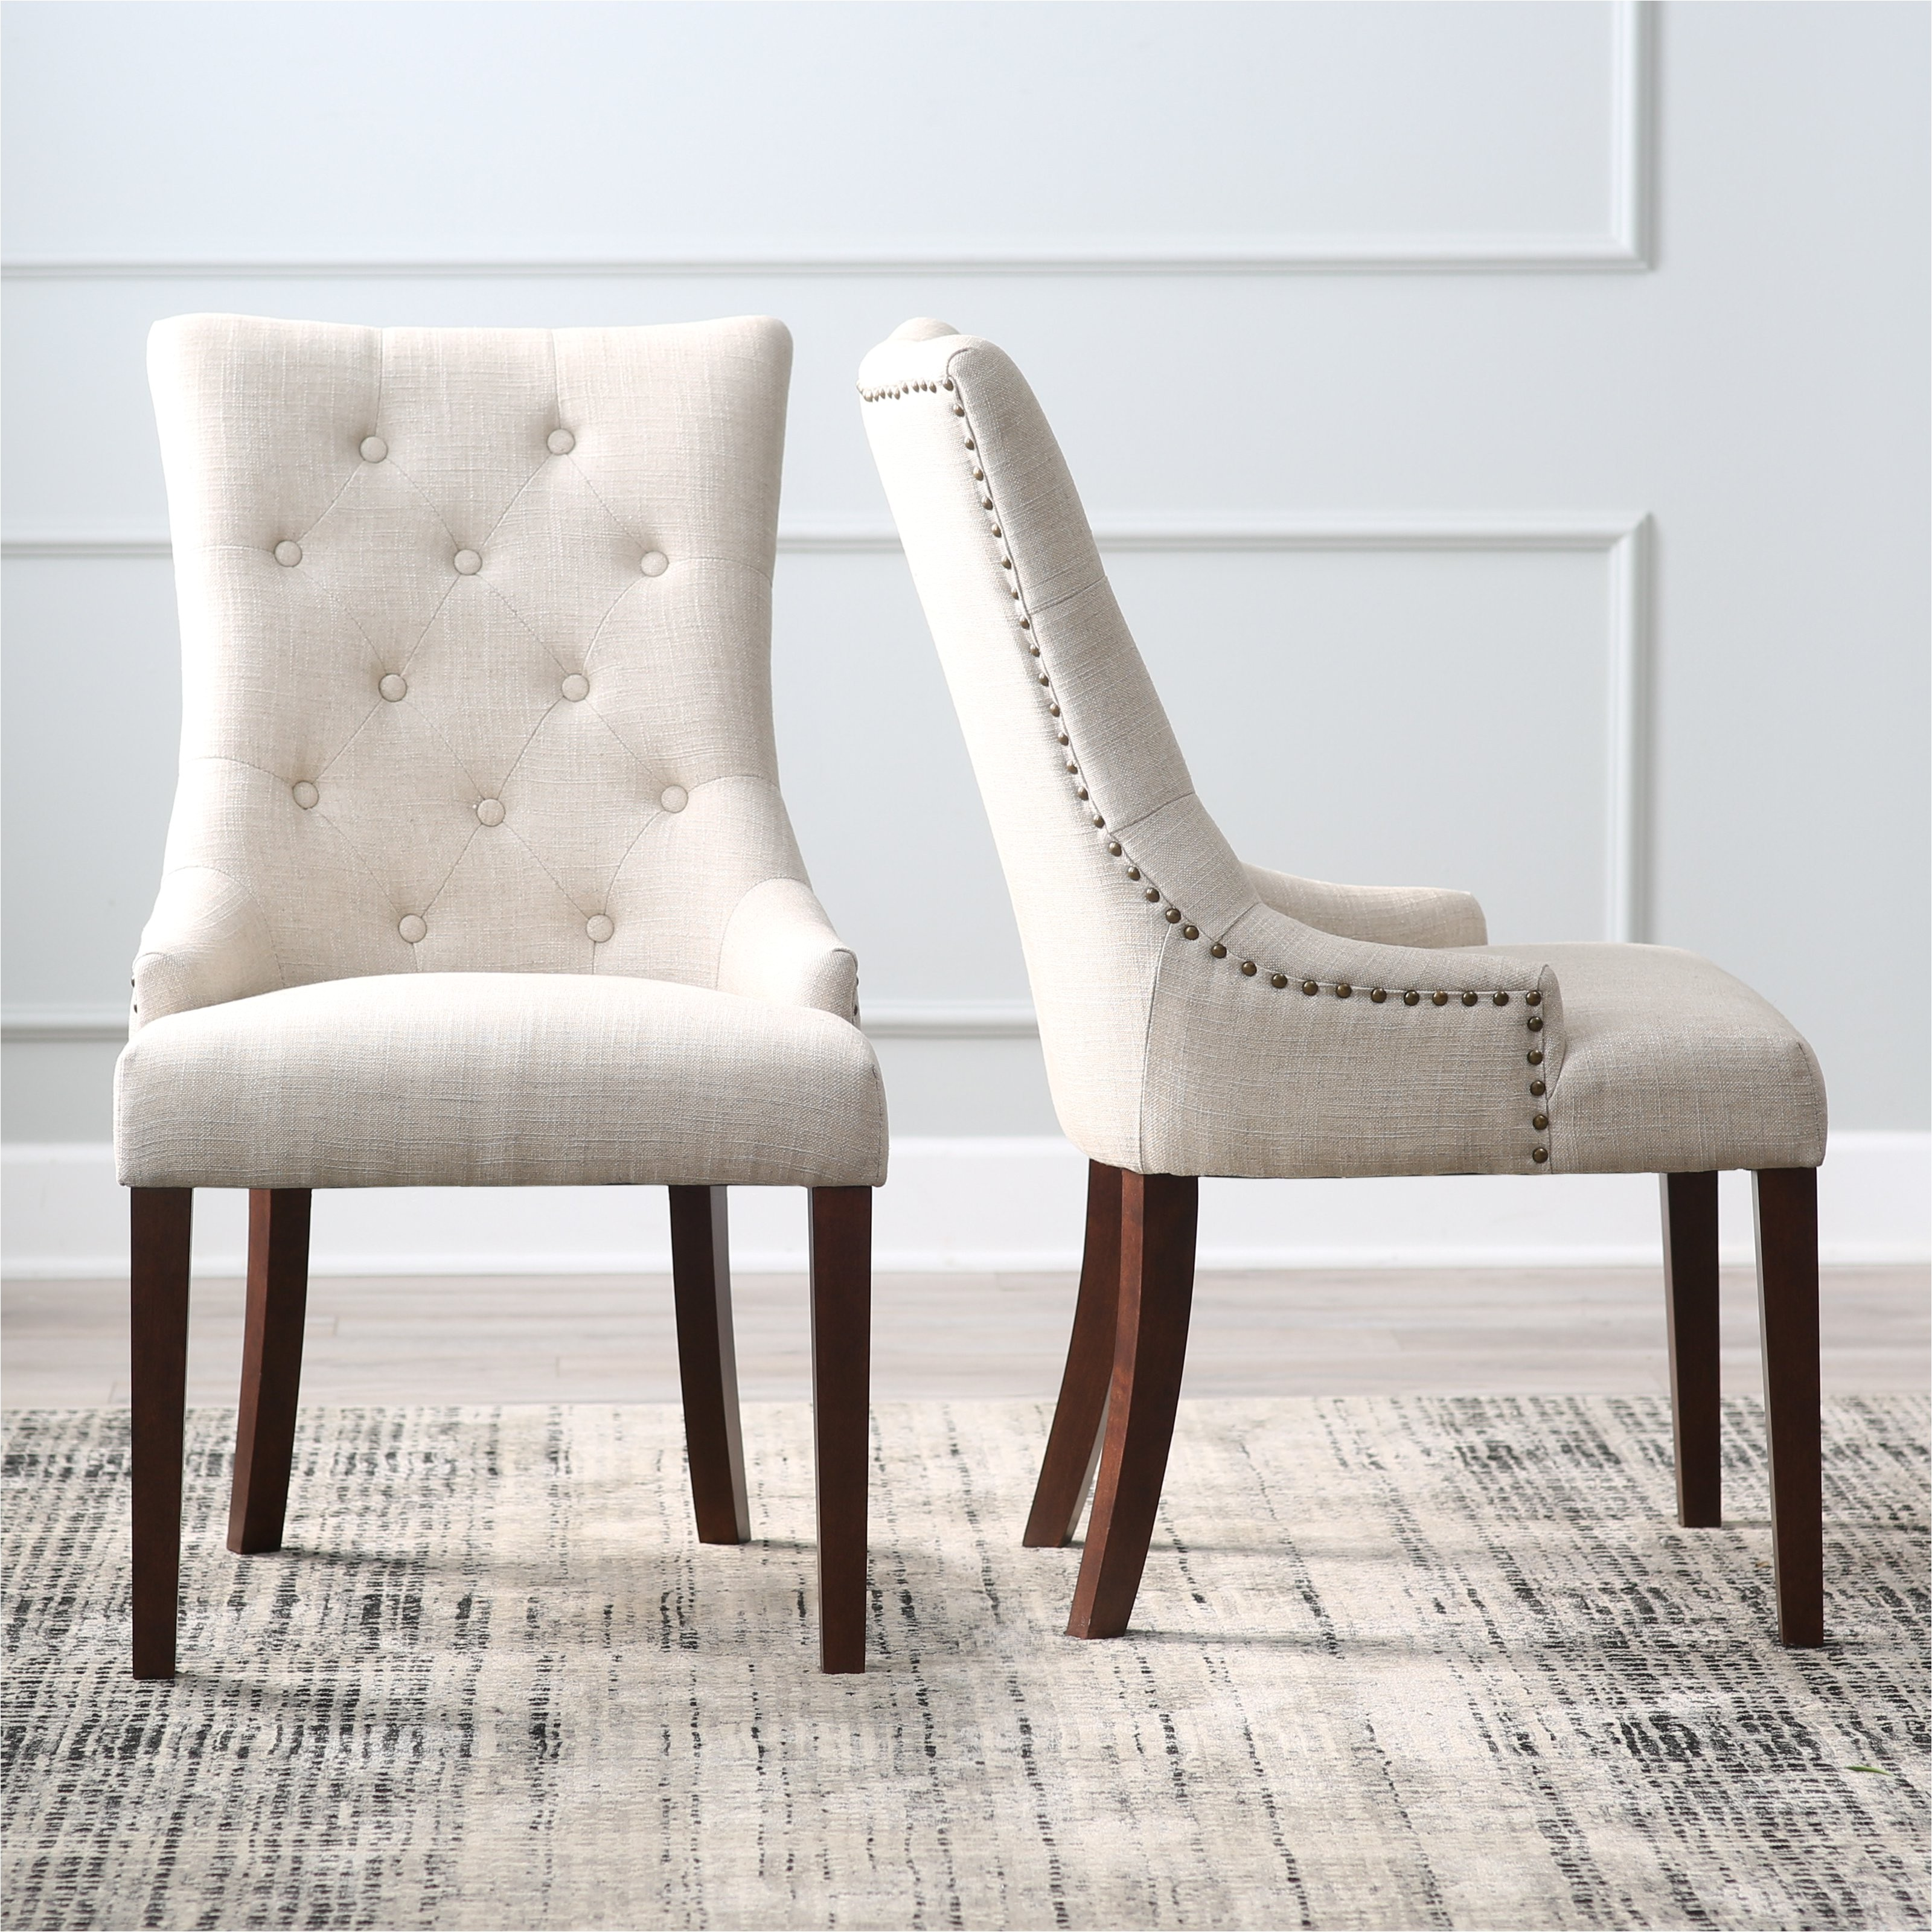 belham living thomas leather tufted tweed dining chairs set of 2 cfm